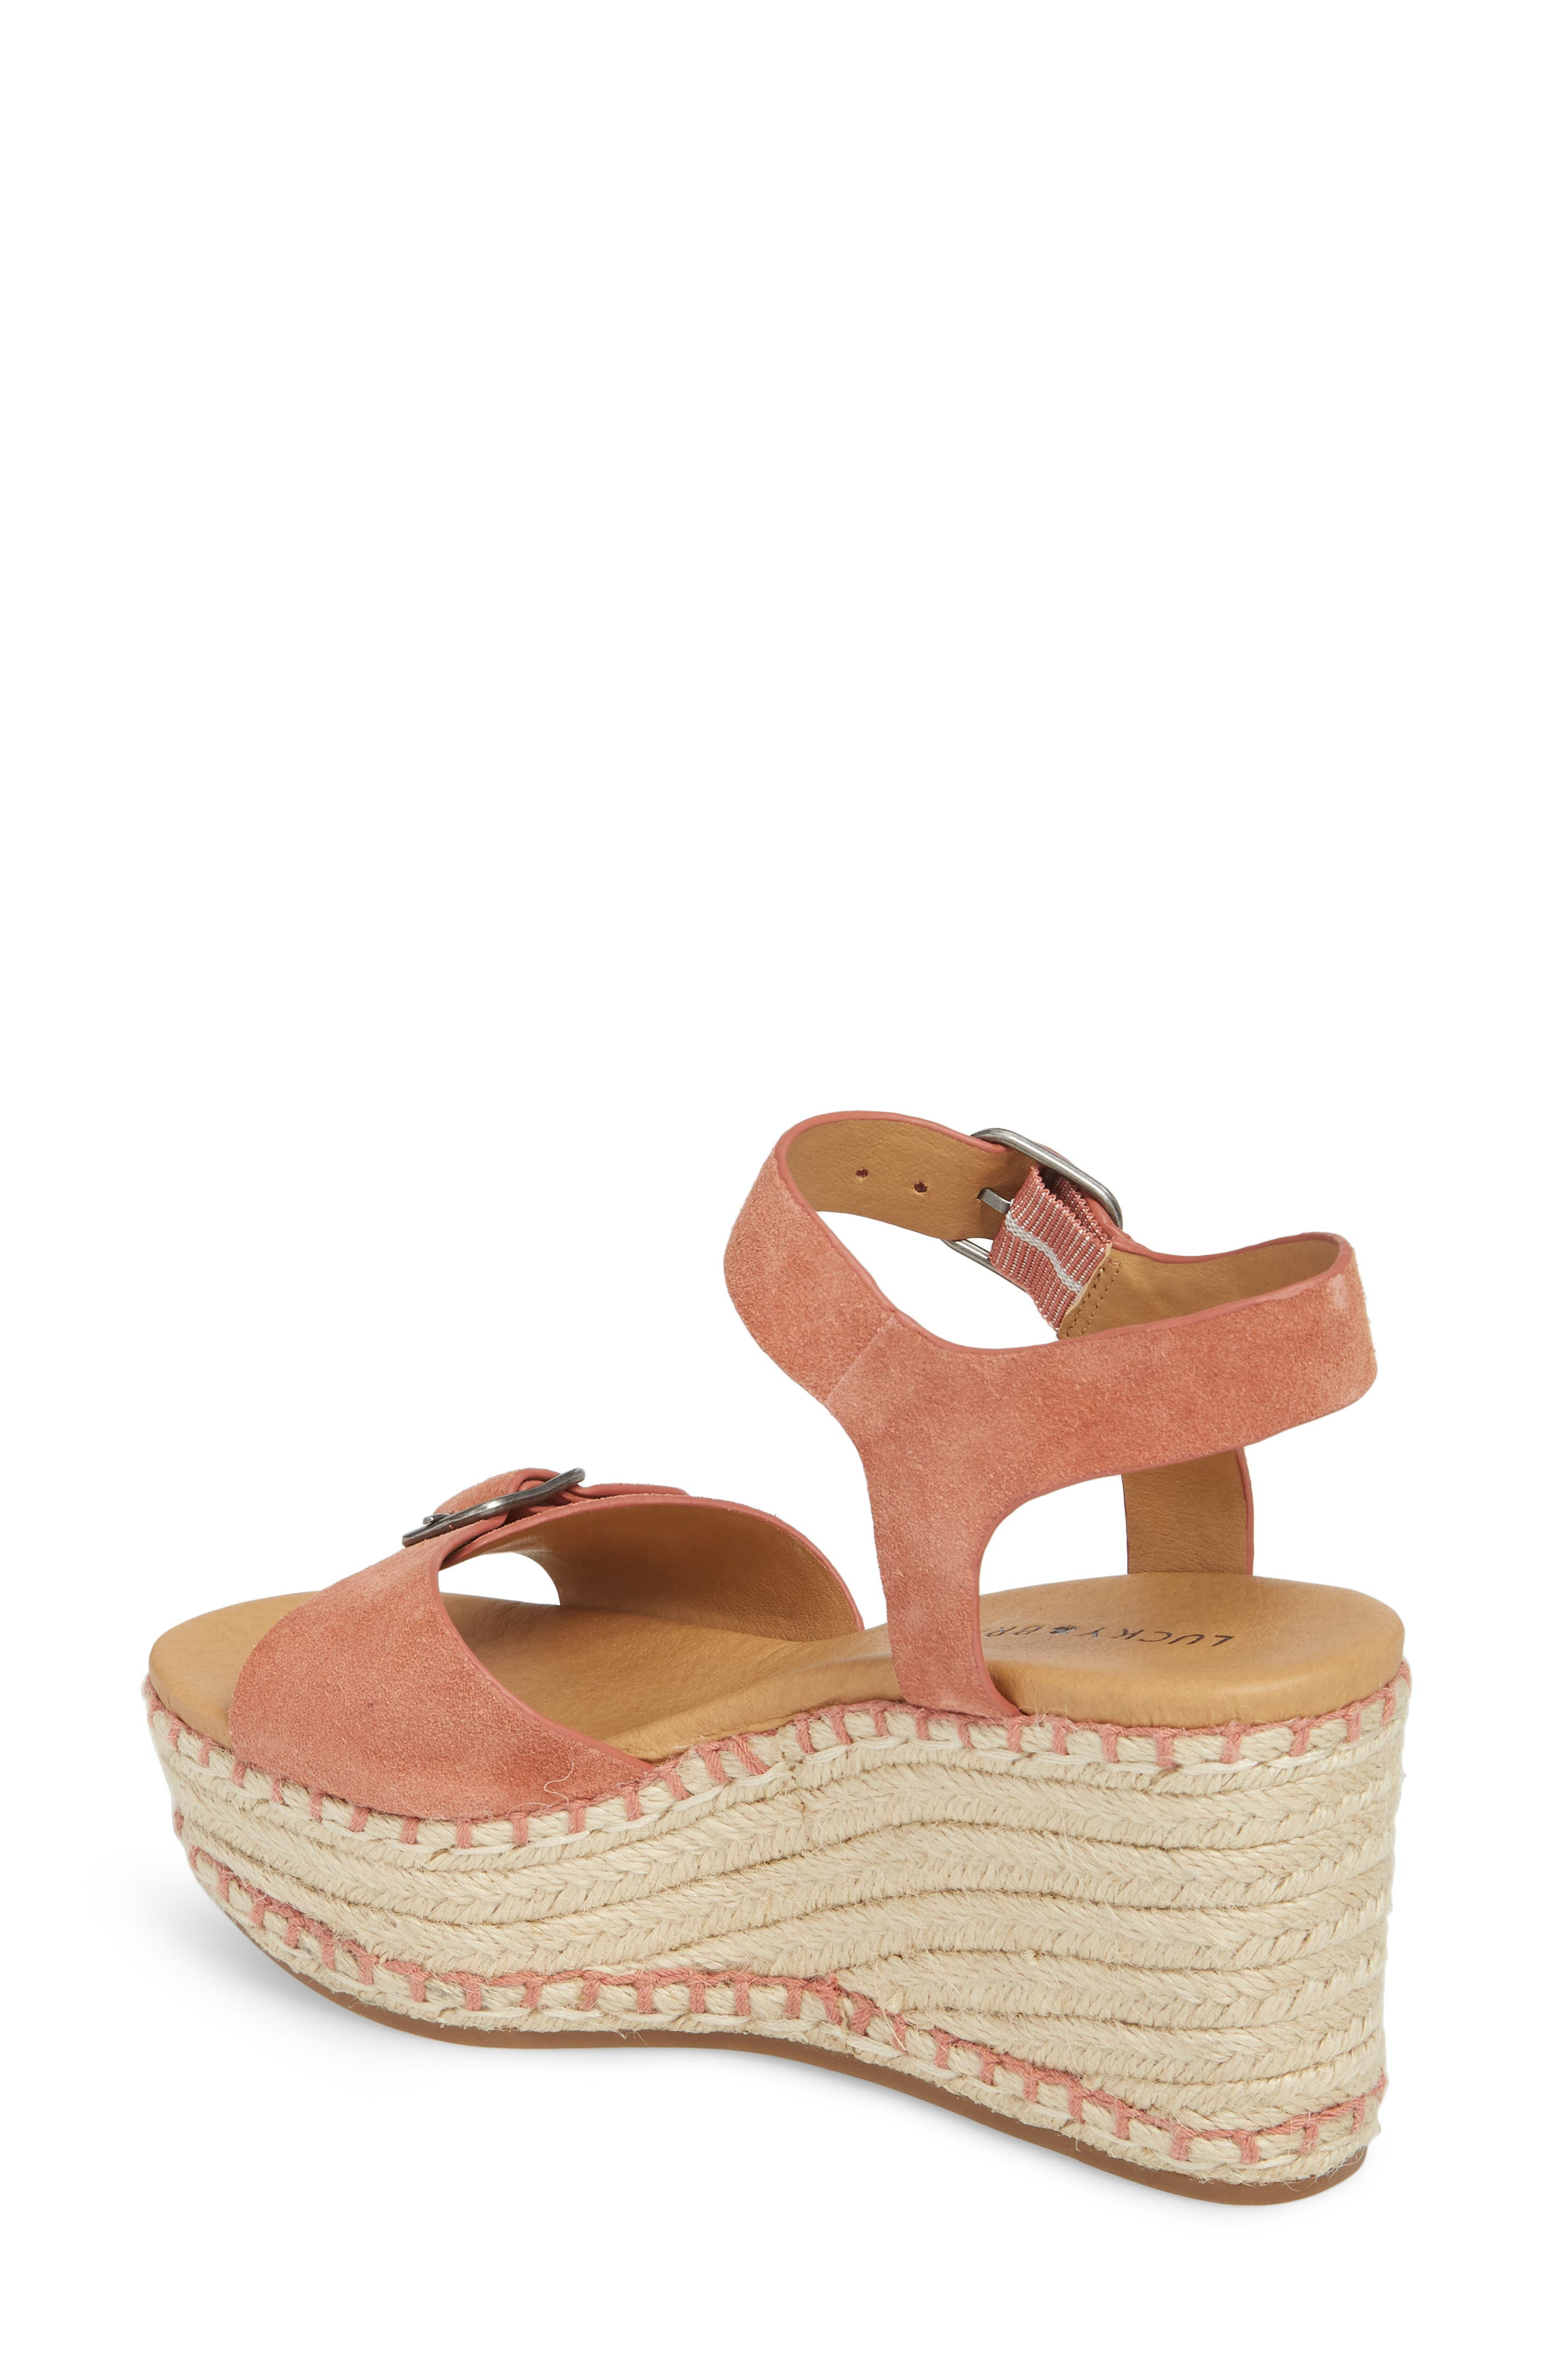 Naveah III Espadrille Wedge Sandal,                             Alternate thumbnail 2, color,                             Canyon Rose Suede